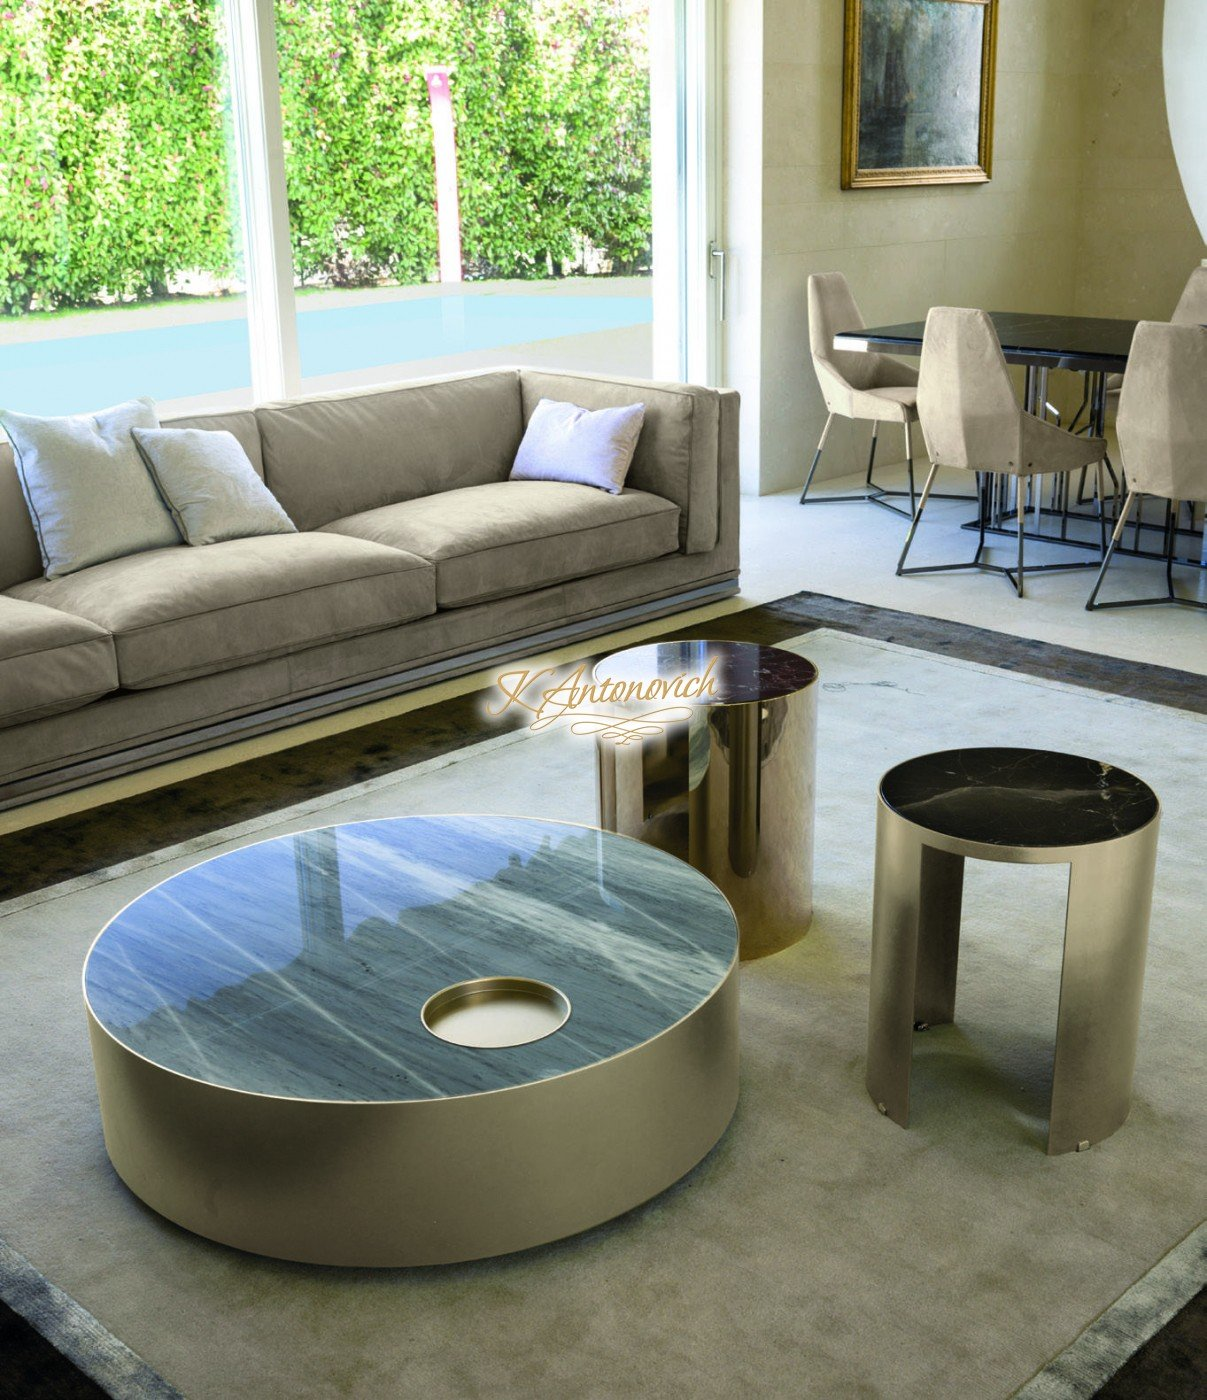 √ Italian style living room furniture